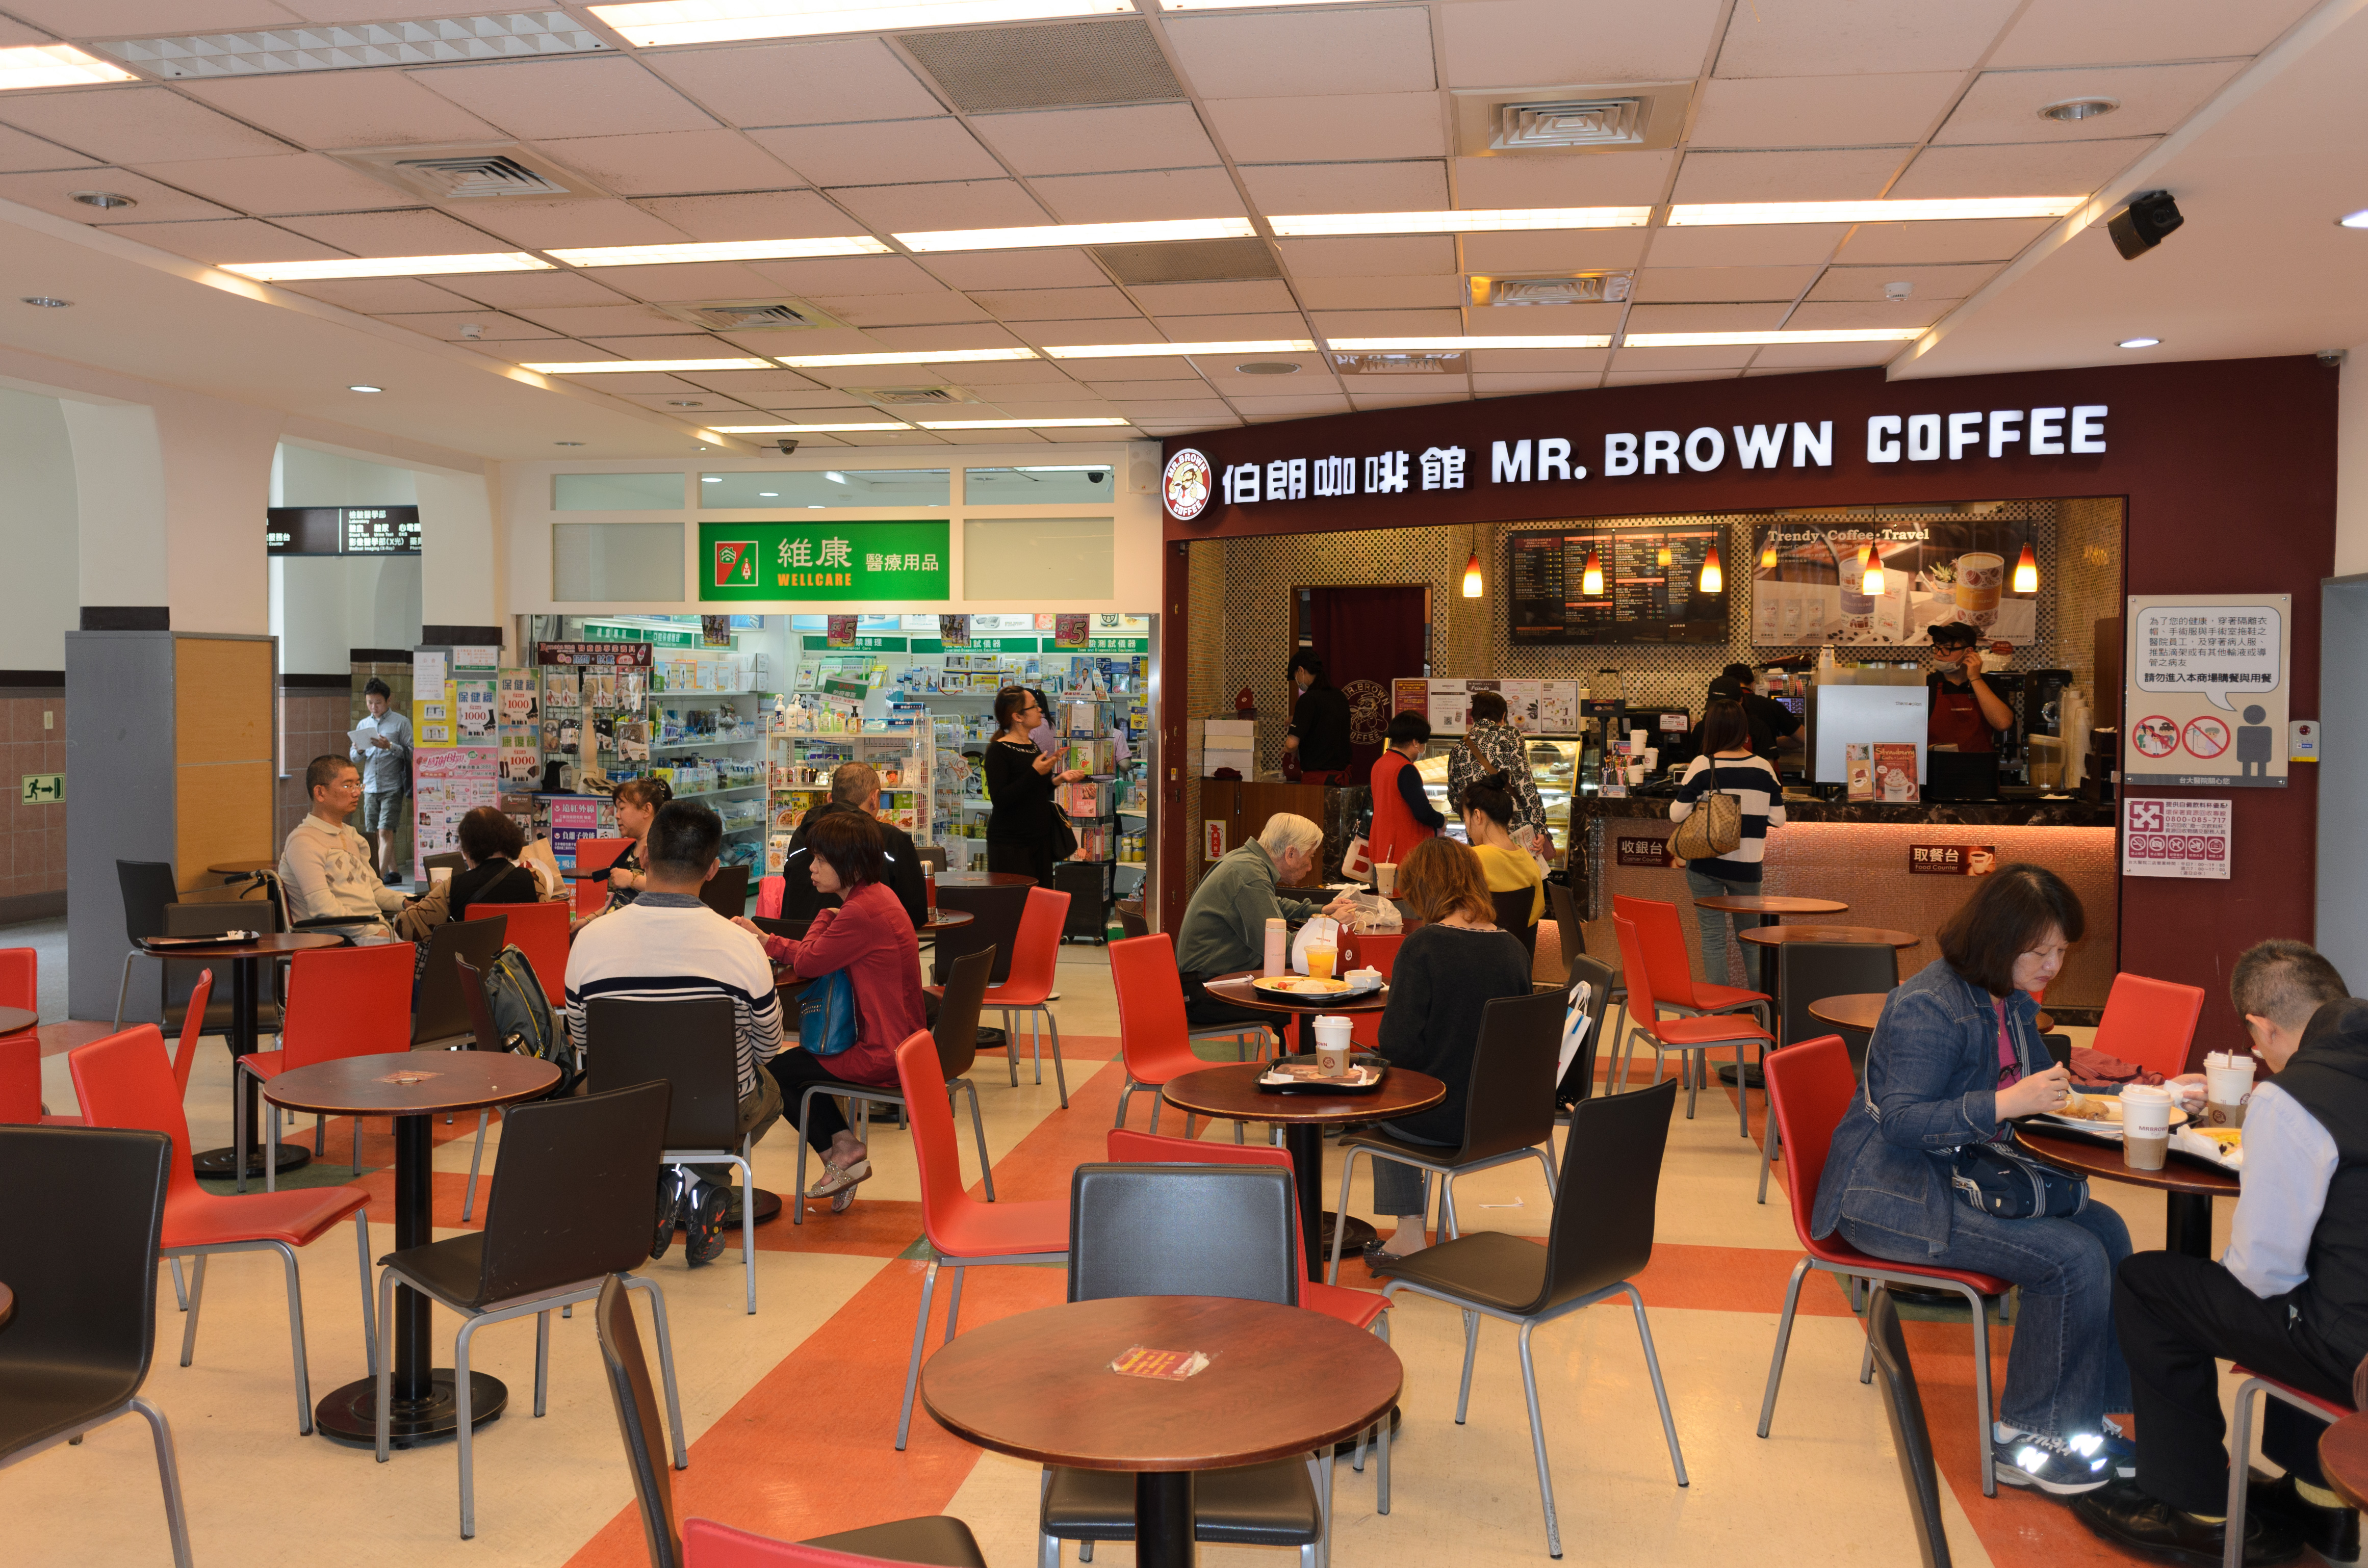 file:mr. brown café 2nd ntu hospital store and wellcare health